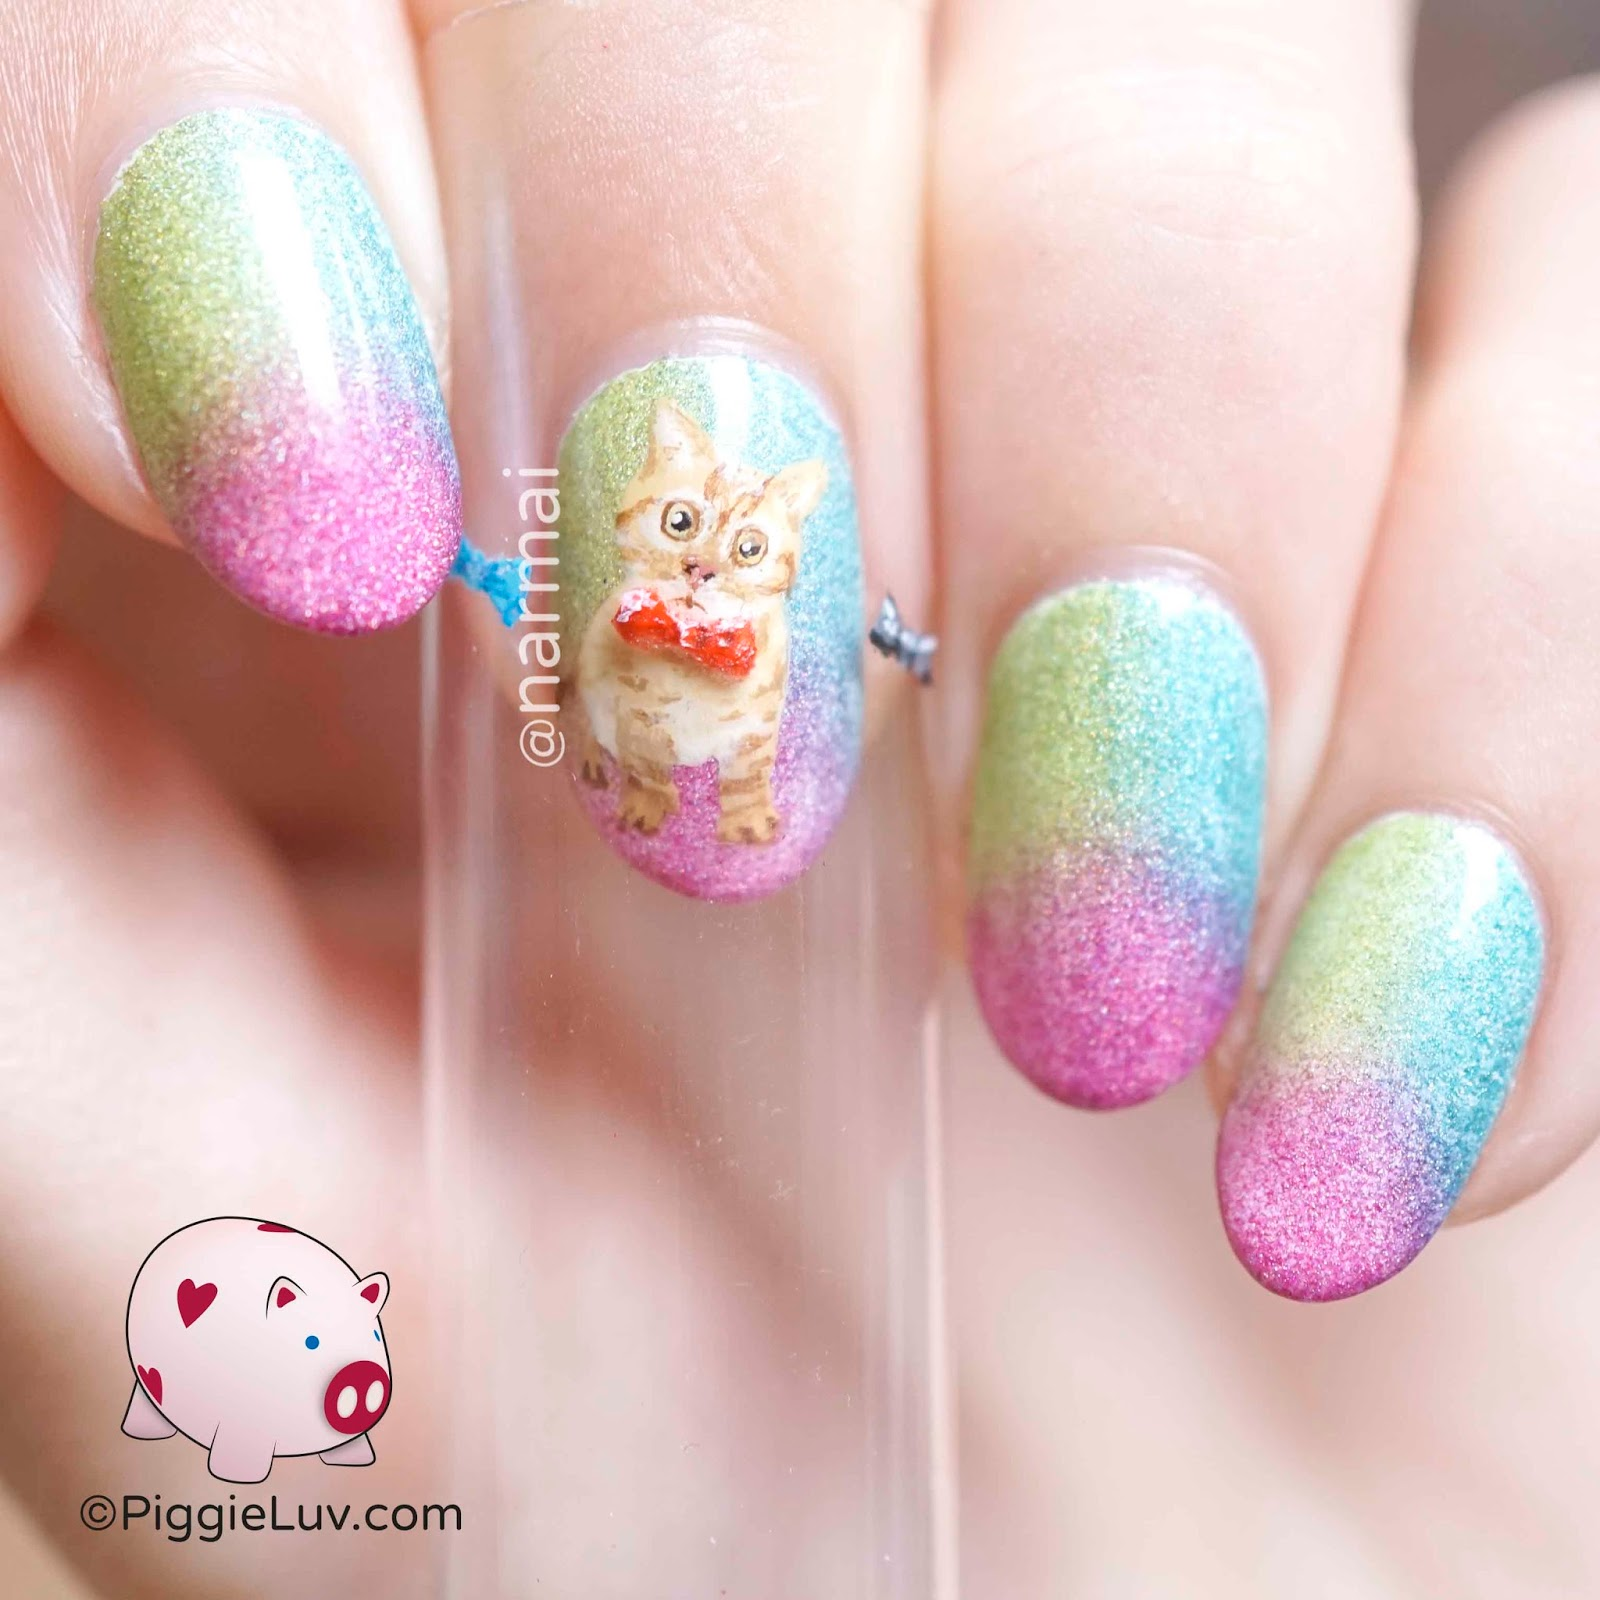 PiggieLuv: Kitten with changing bowties nail art